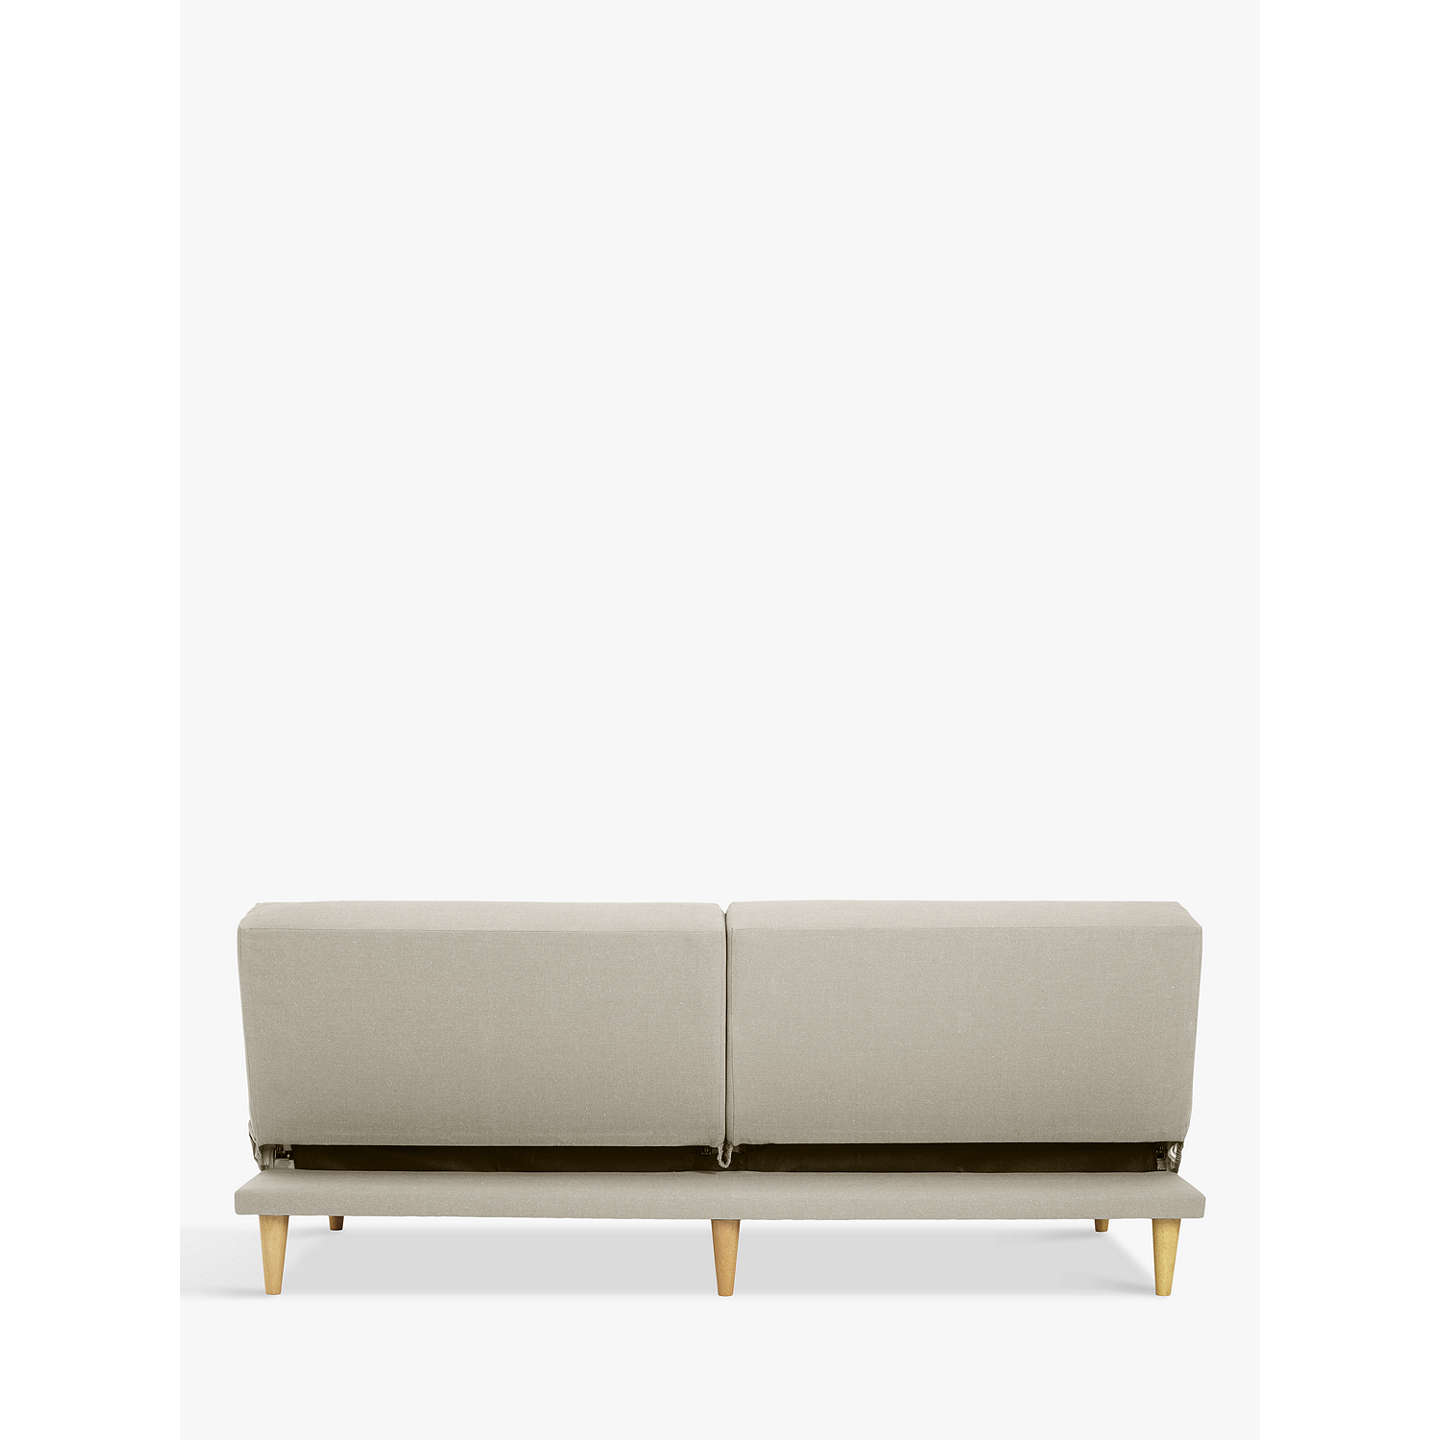 BuyJohn Lewis The Basics Clapton Sofa Bed with Foam Mattress, Putty Online at johnlewis.com